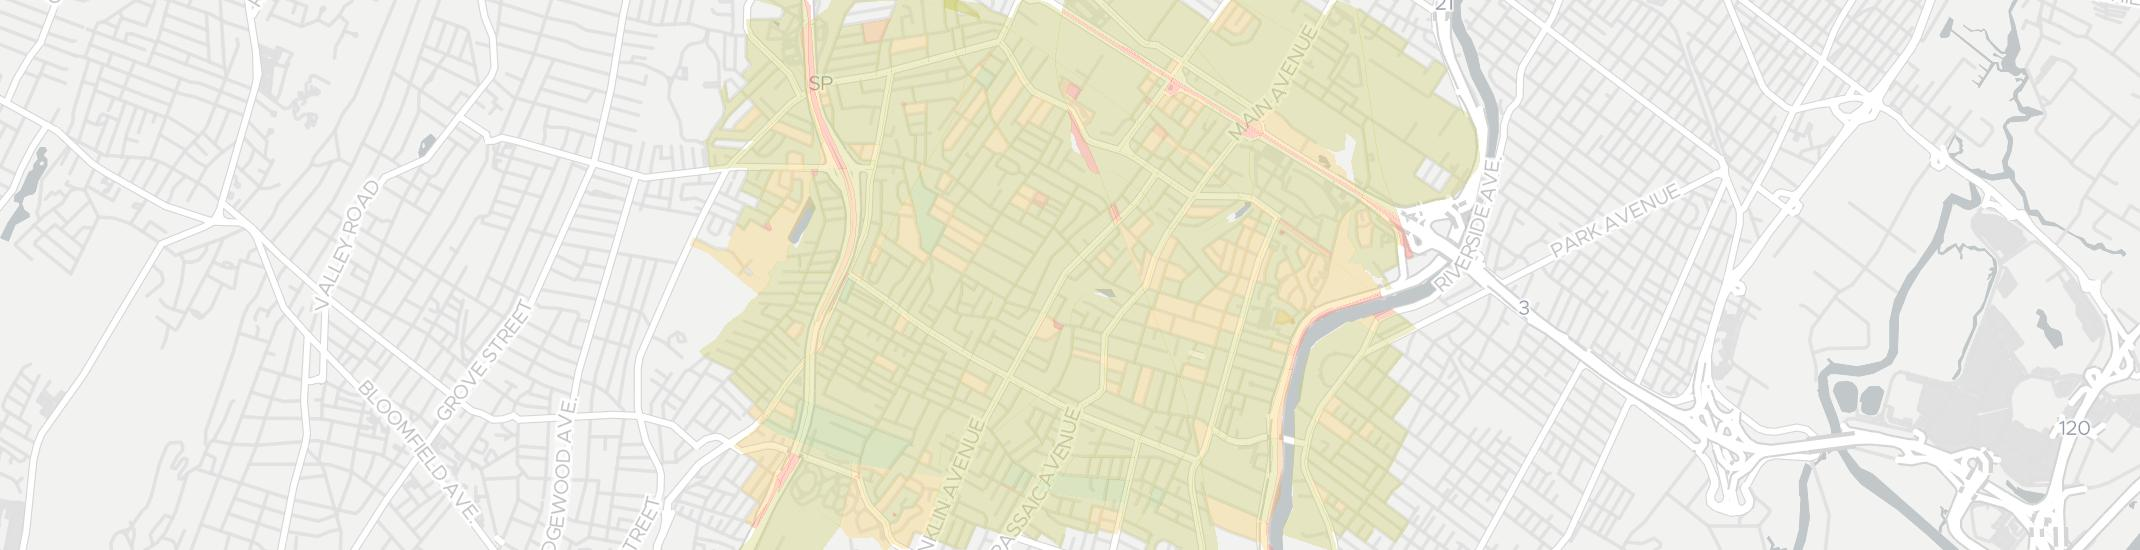 Nutley Internet Competition Map. Click for interactive map.